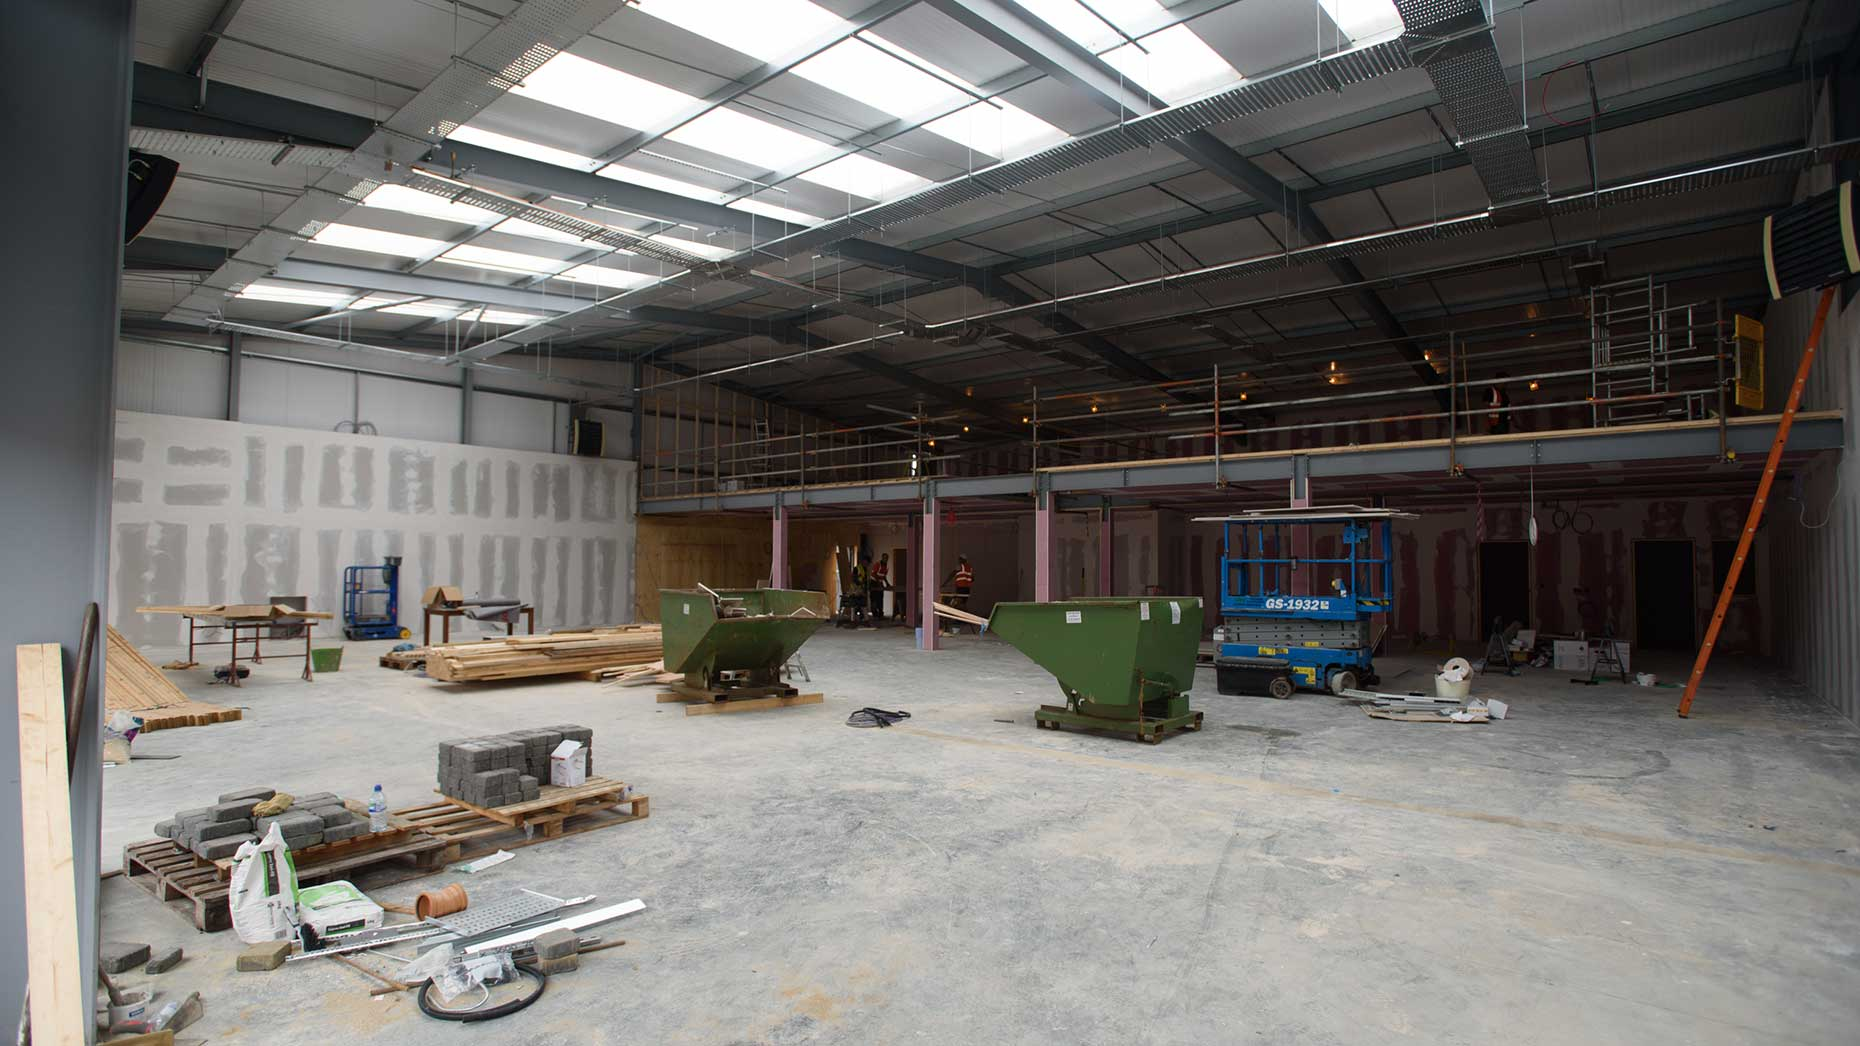 Building work is underway on site, behind the hall's shop and cafe.